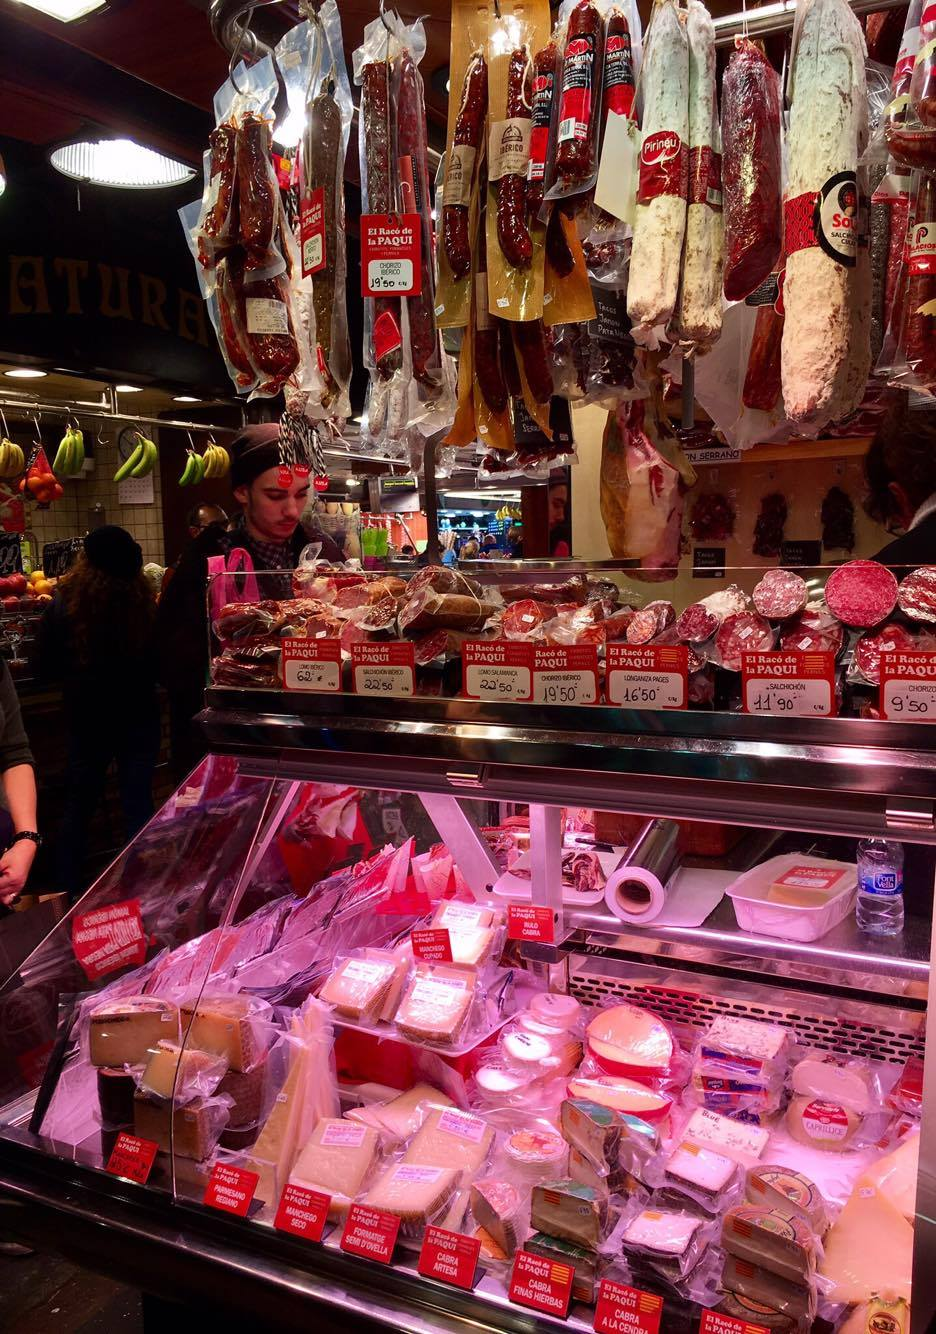 The famed Chorizo sausage, and goat cheese, which is favored in Spain over that made of cow's milk